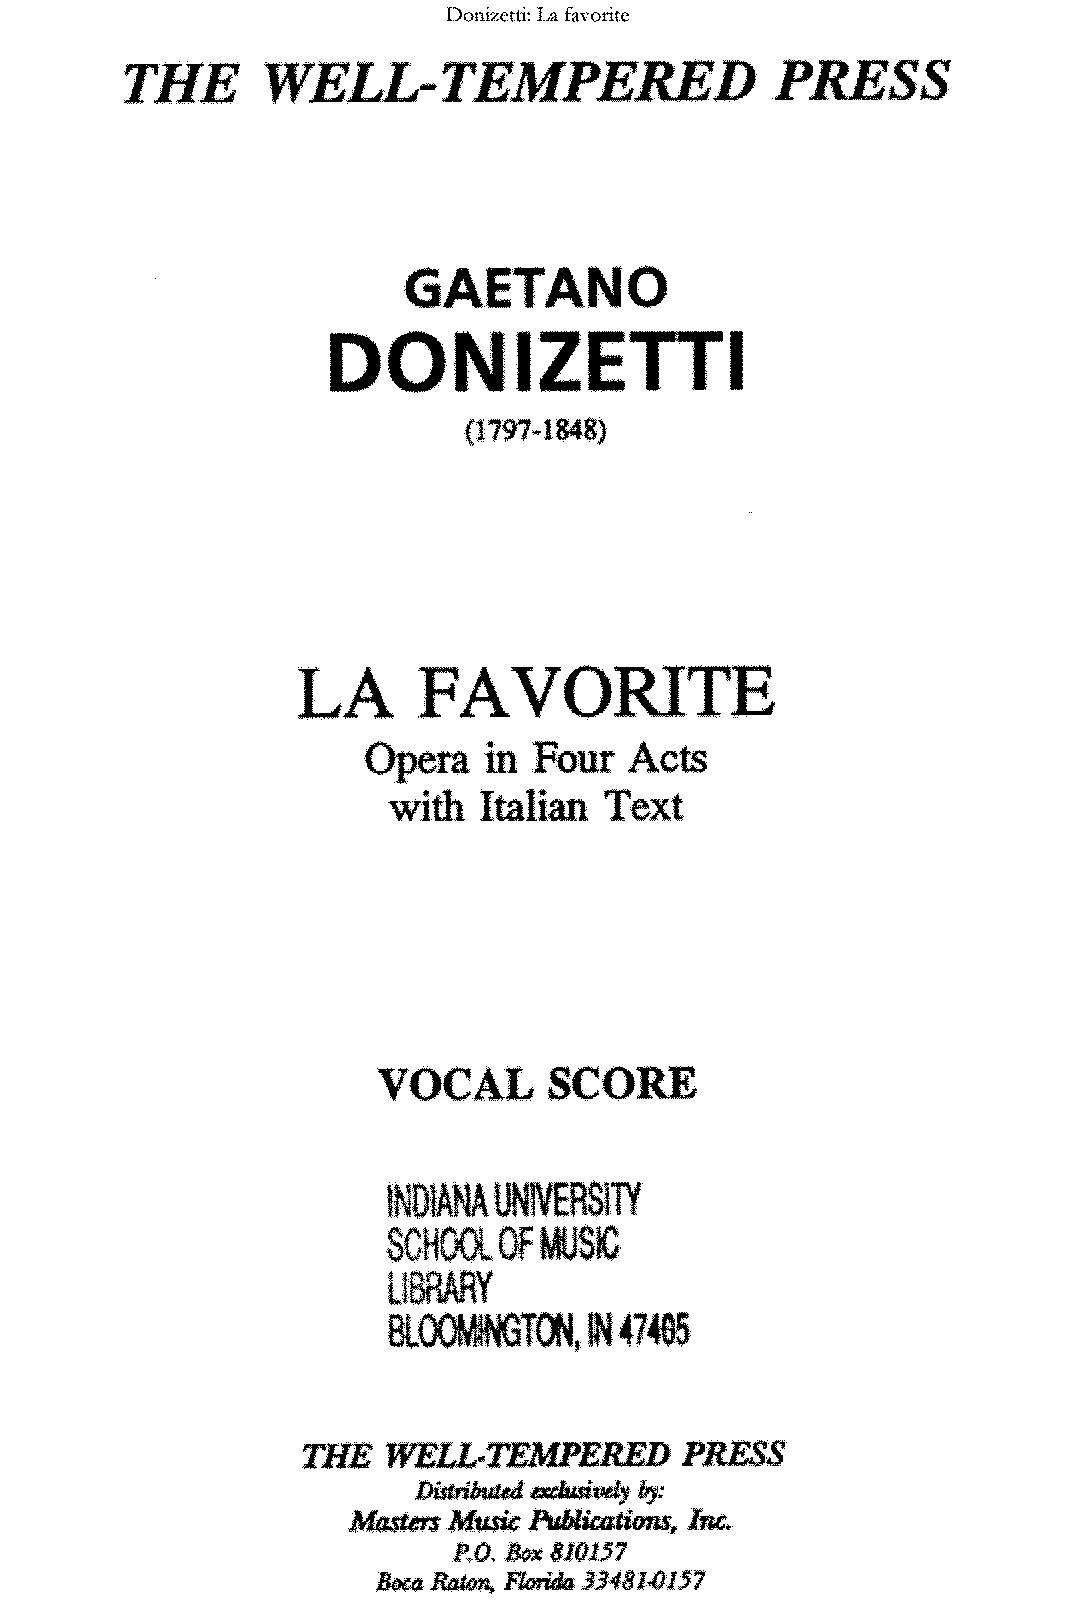 PMLP98841-Donizetti--La favorite--vocal score.pdf